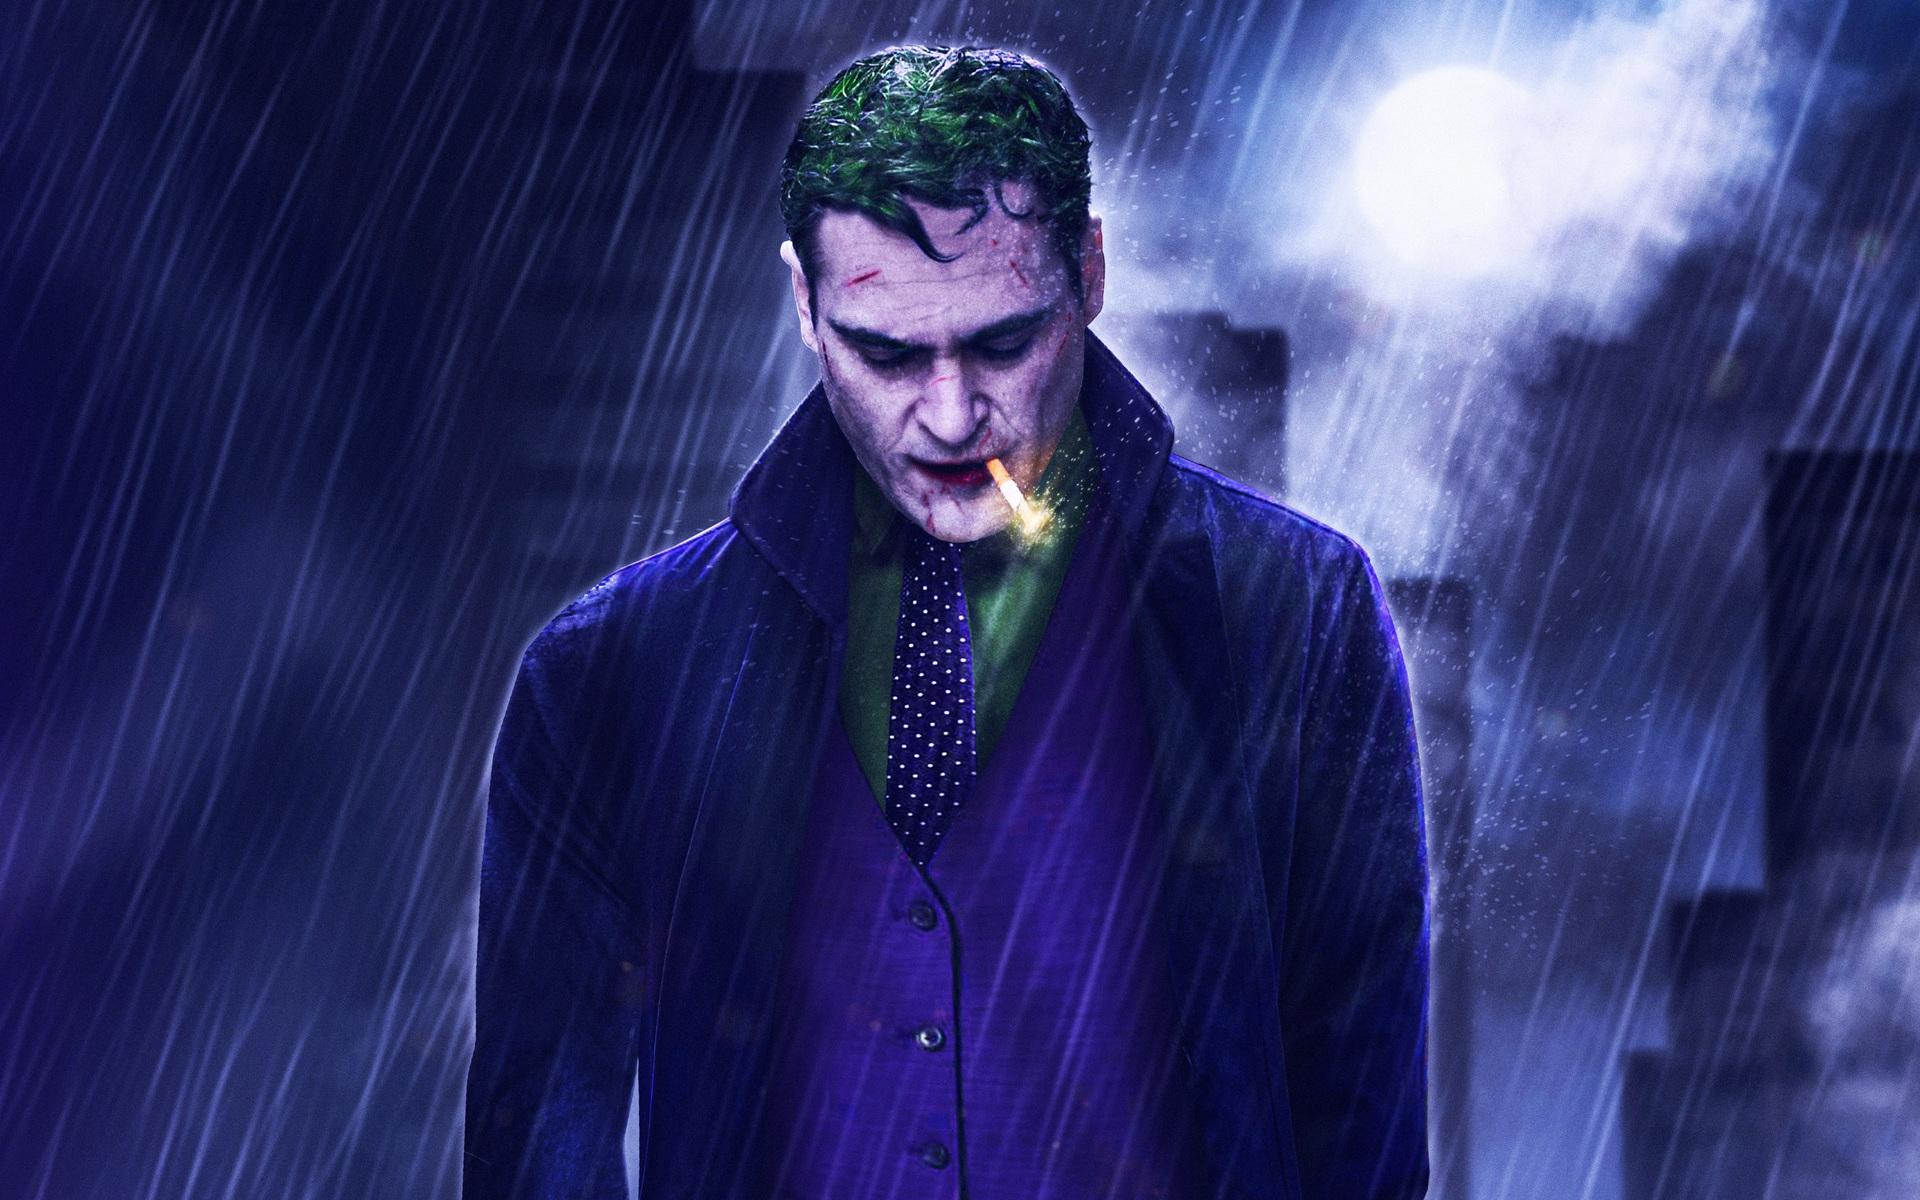 1920x1200 Joaquin Phoenix Joker 2019 Movie 5k 1080P